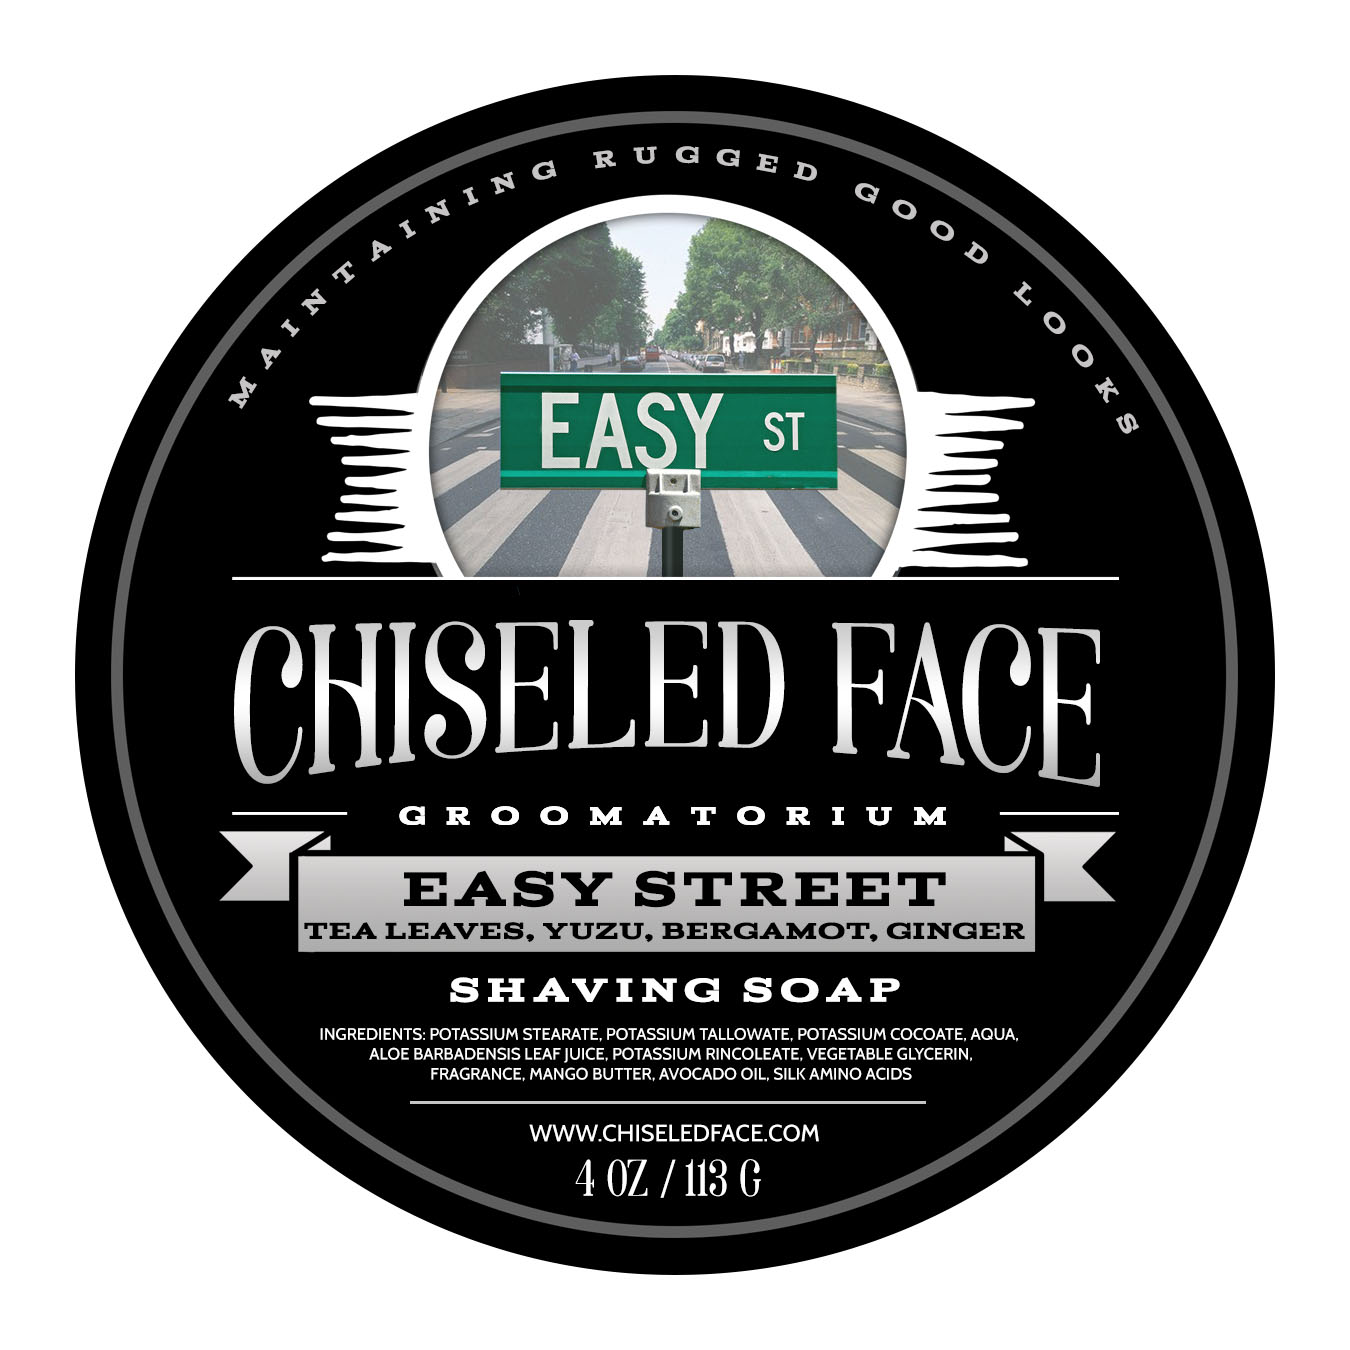 Chiseled Face - Easy Street - Soap image